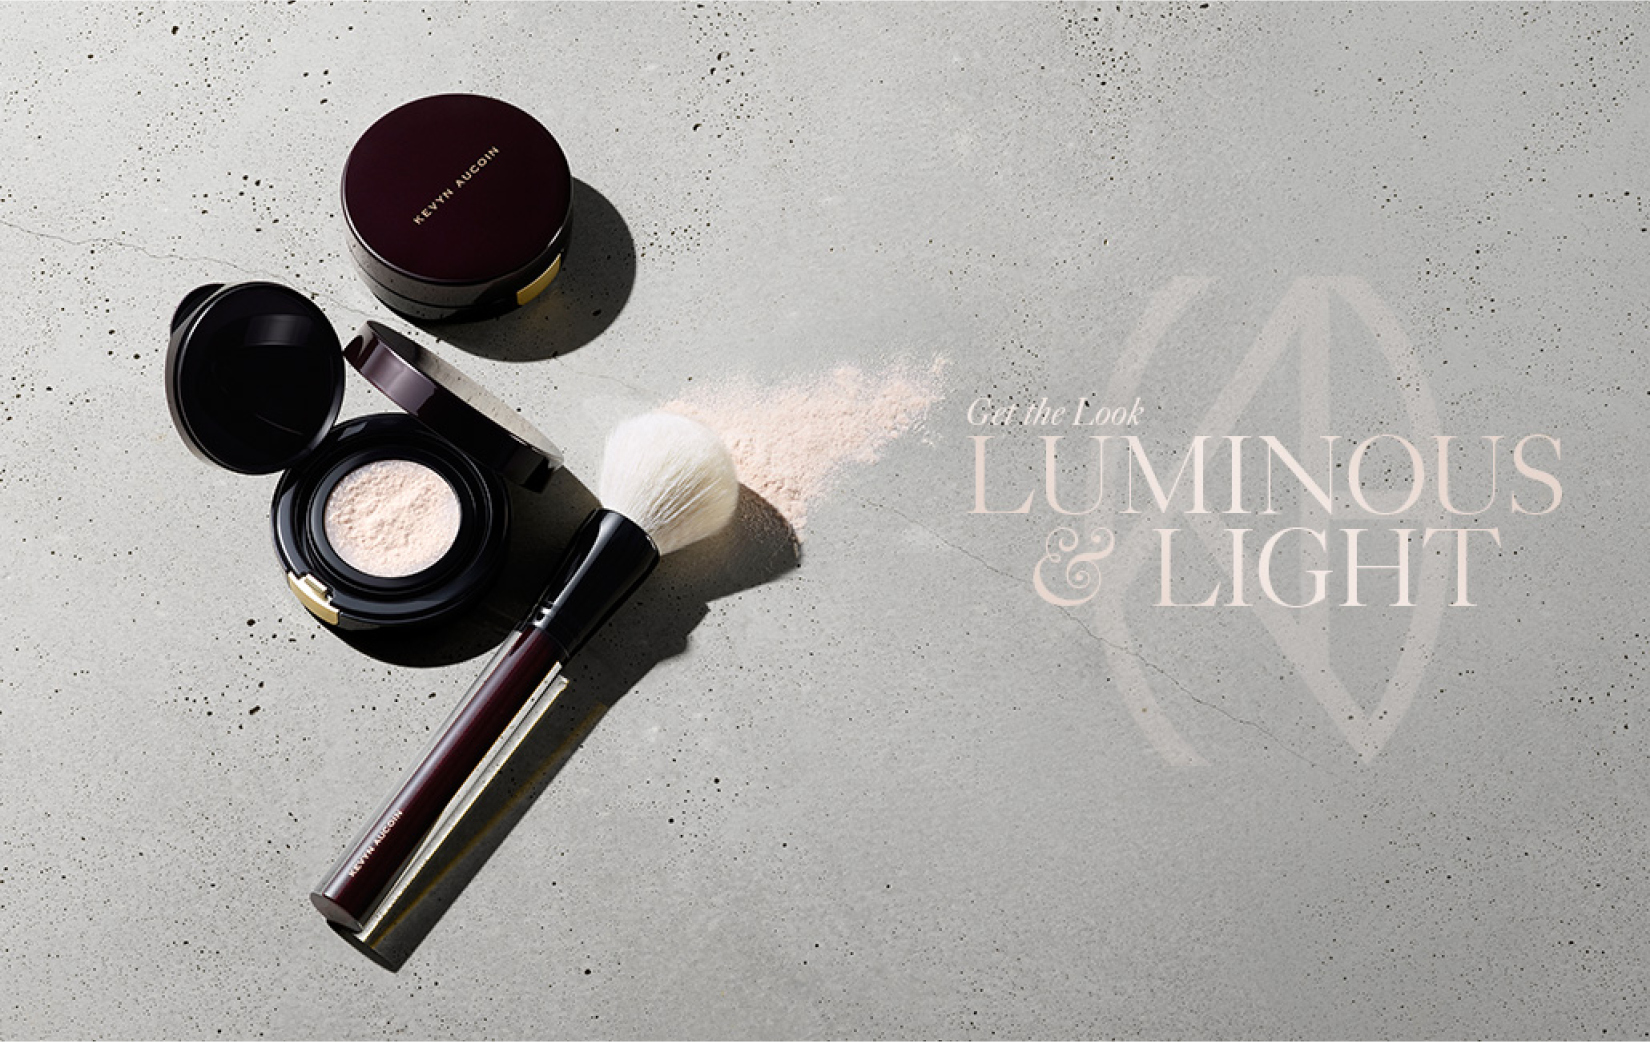 Luminous and light powder by Kevyn Aucoin that was designed and packaged by DTE.